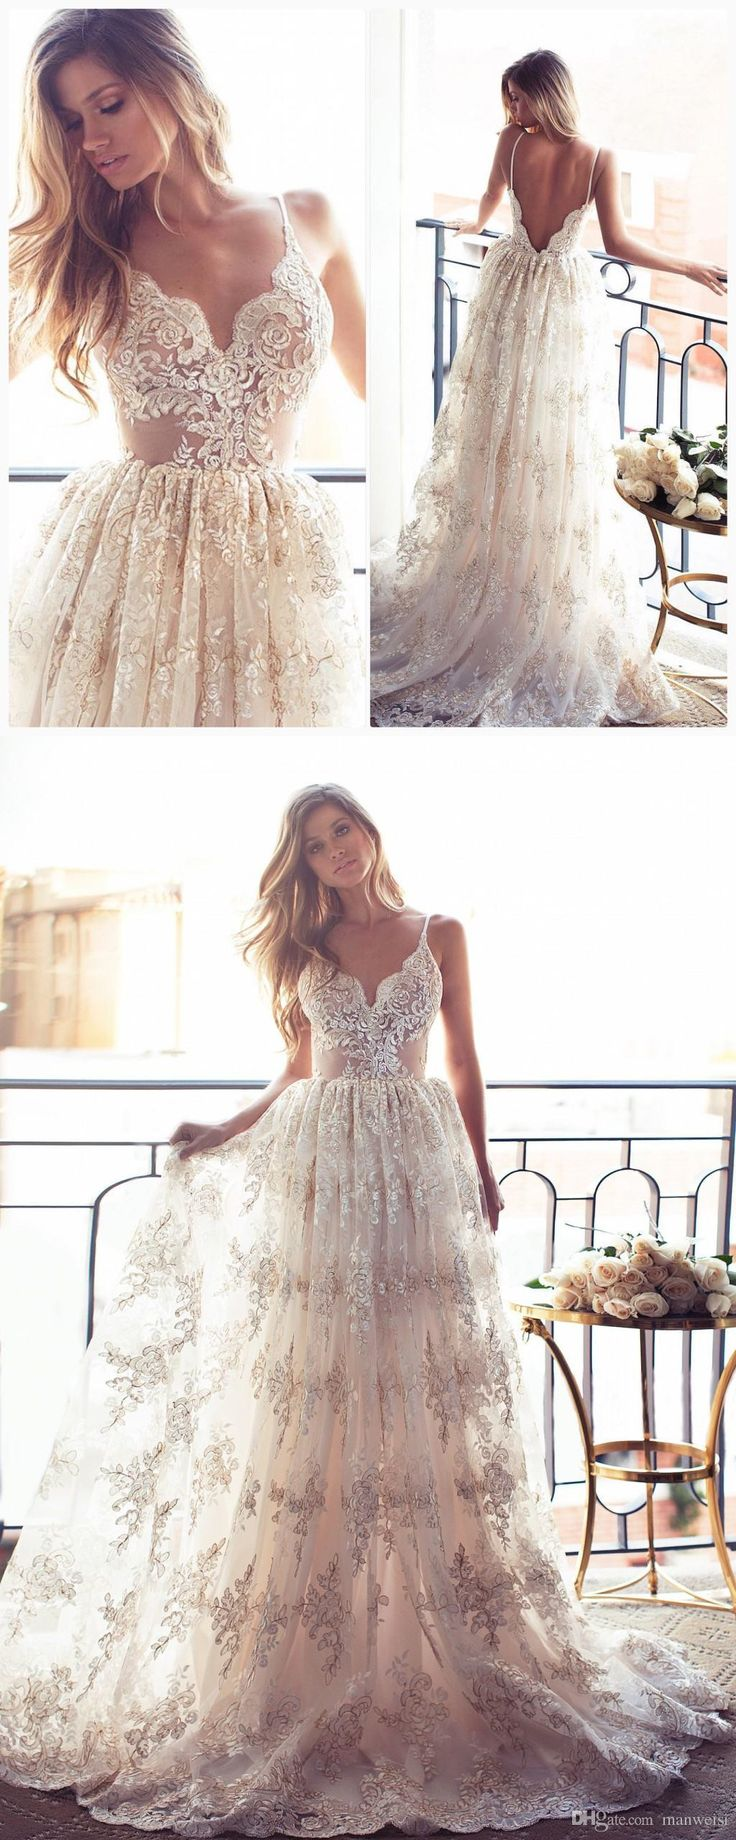 2017 wedding dress, white lace wedding dress, romantic wedding dress Pinterest: ♡Angel ♡